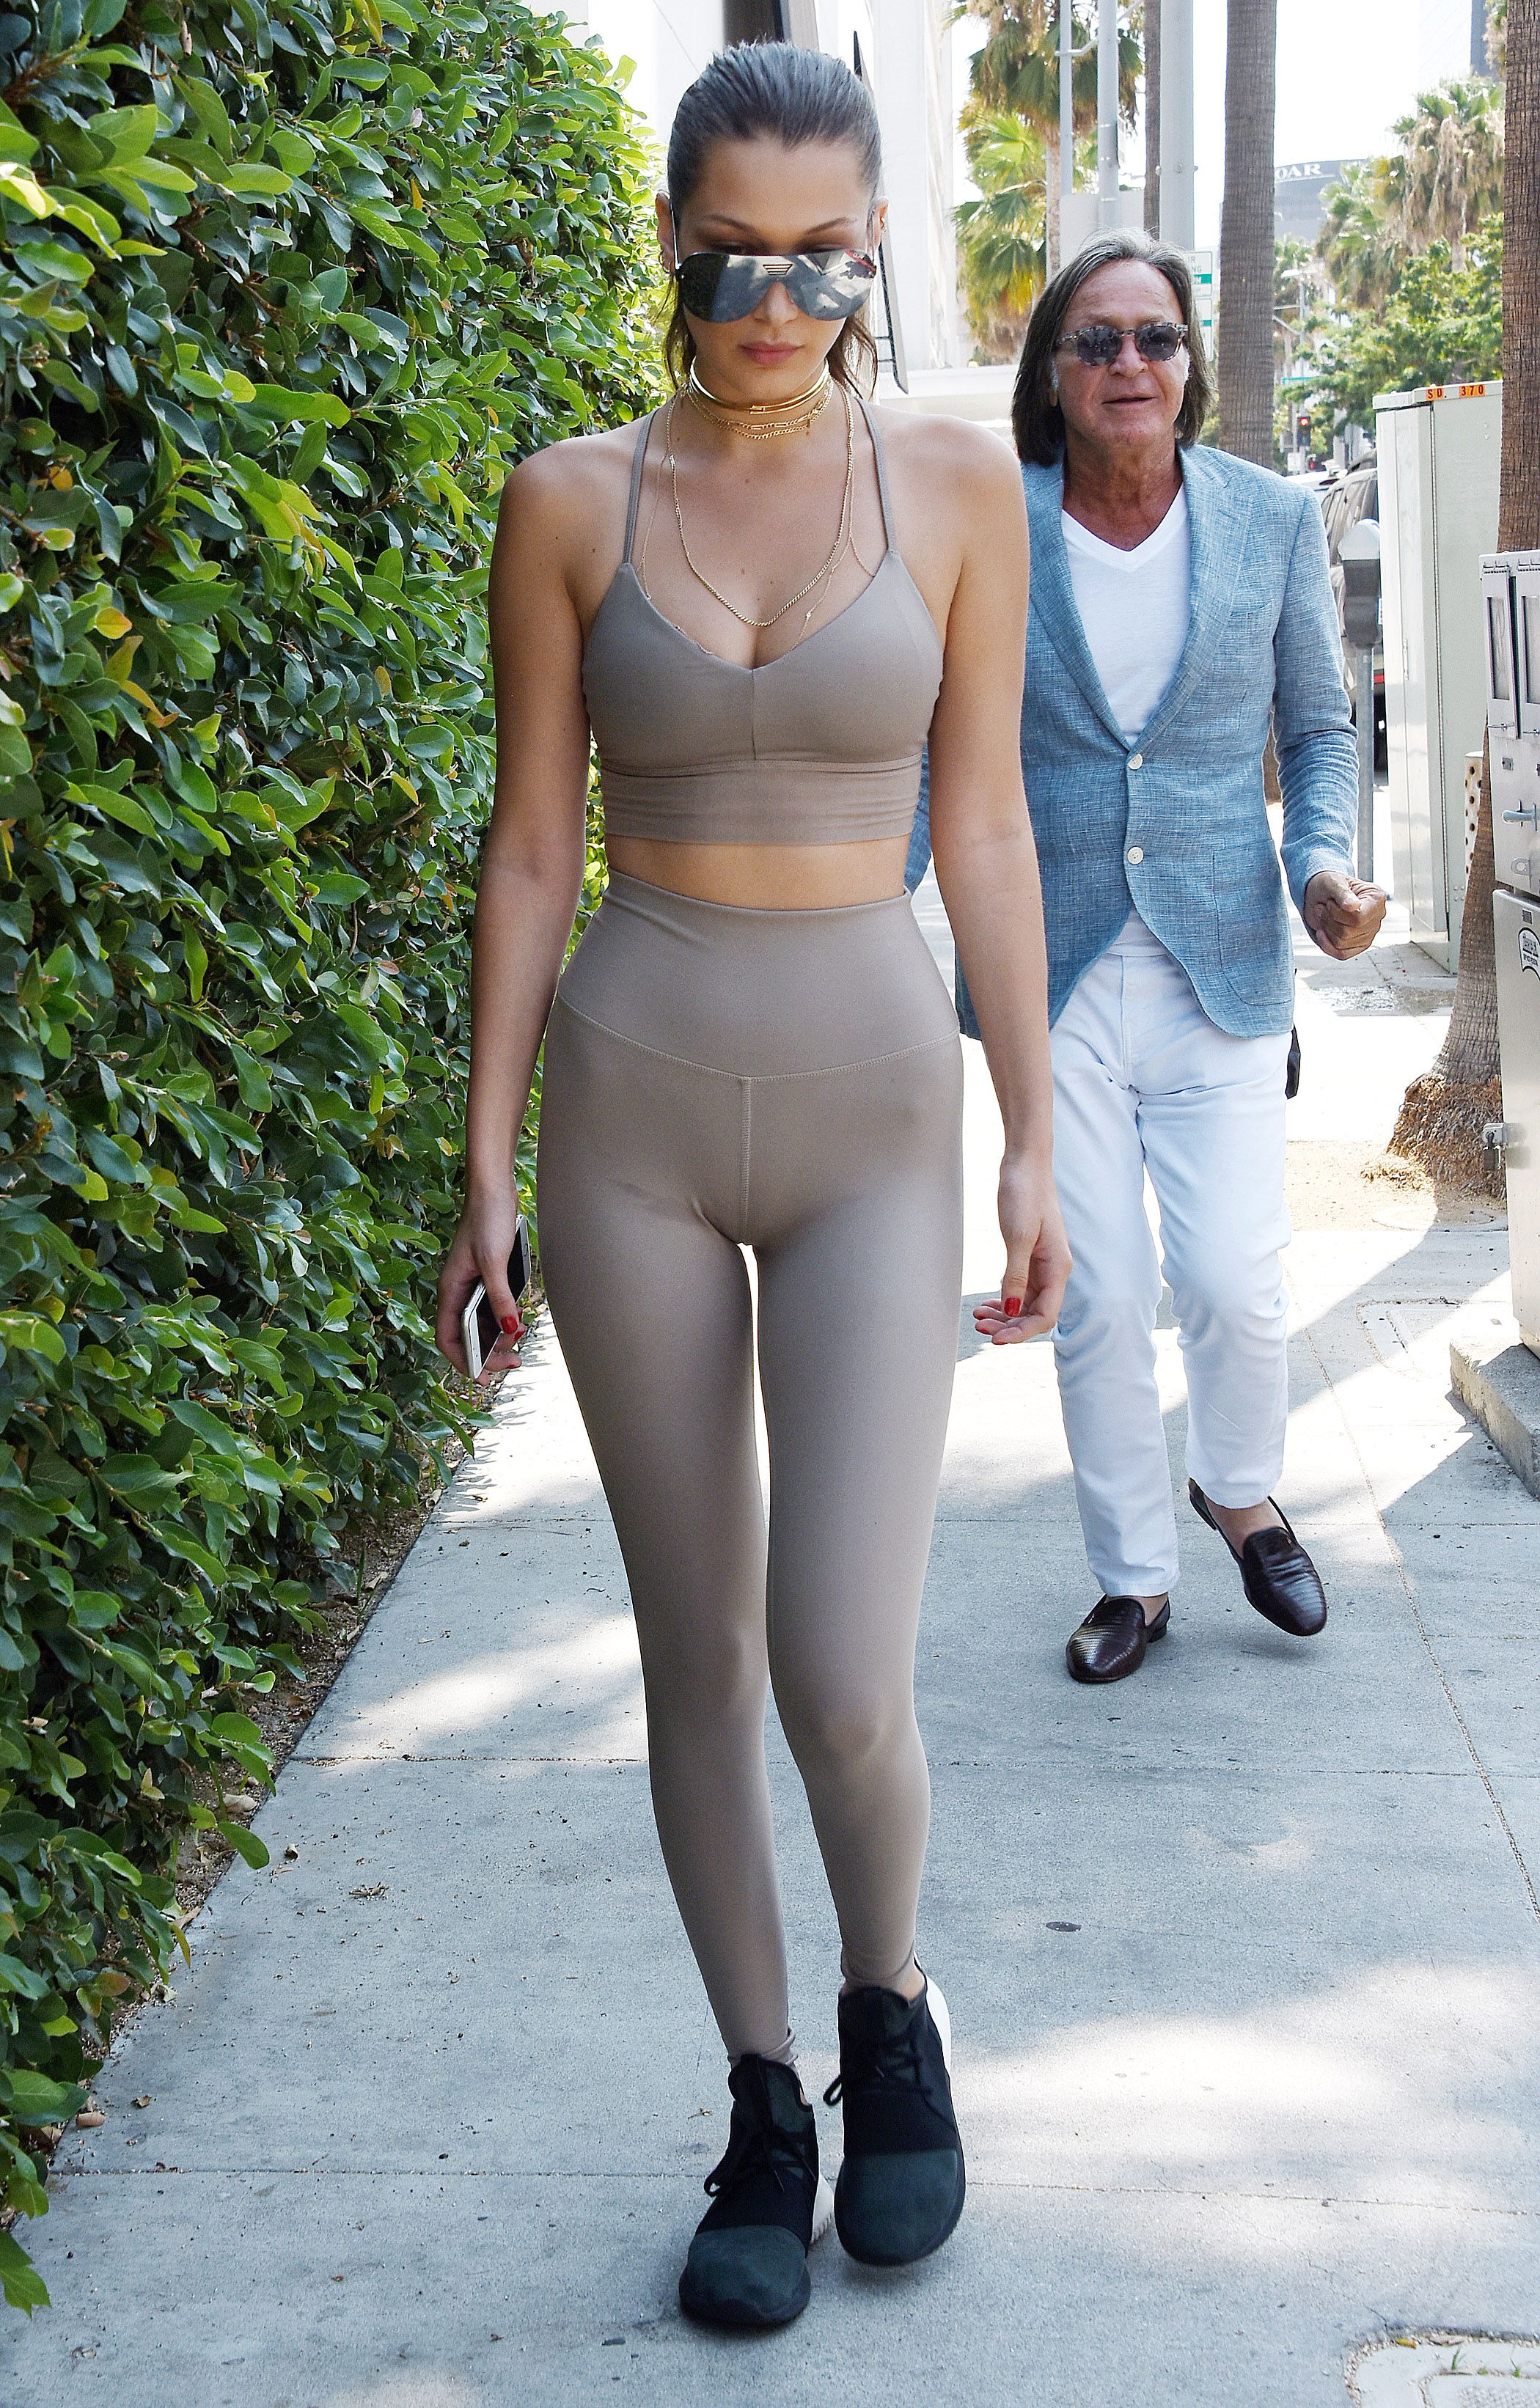 Discussion on this topic: Laura Cartier ass, cleavage-photos-of-gigi-hadid/